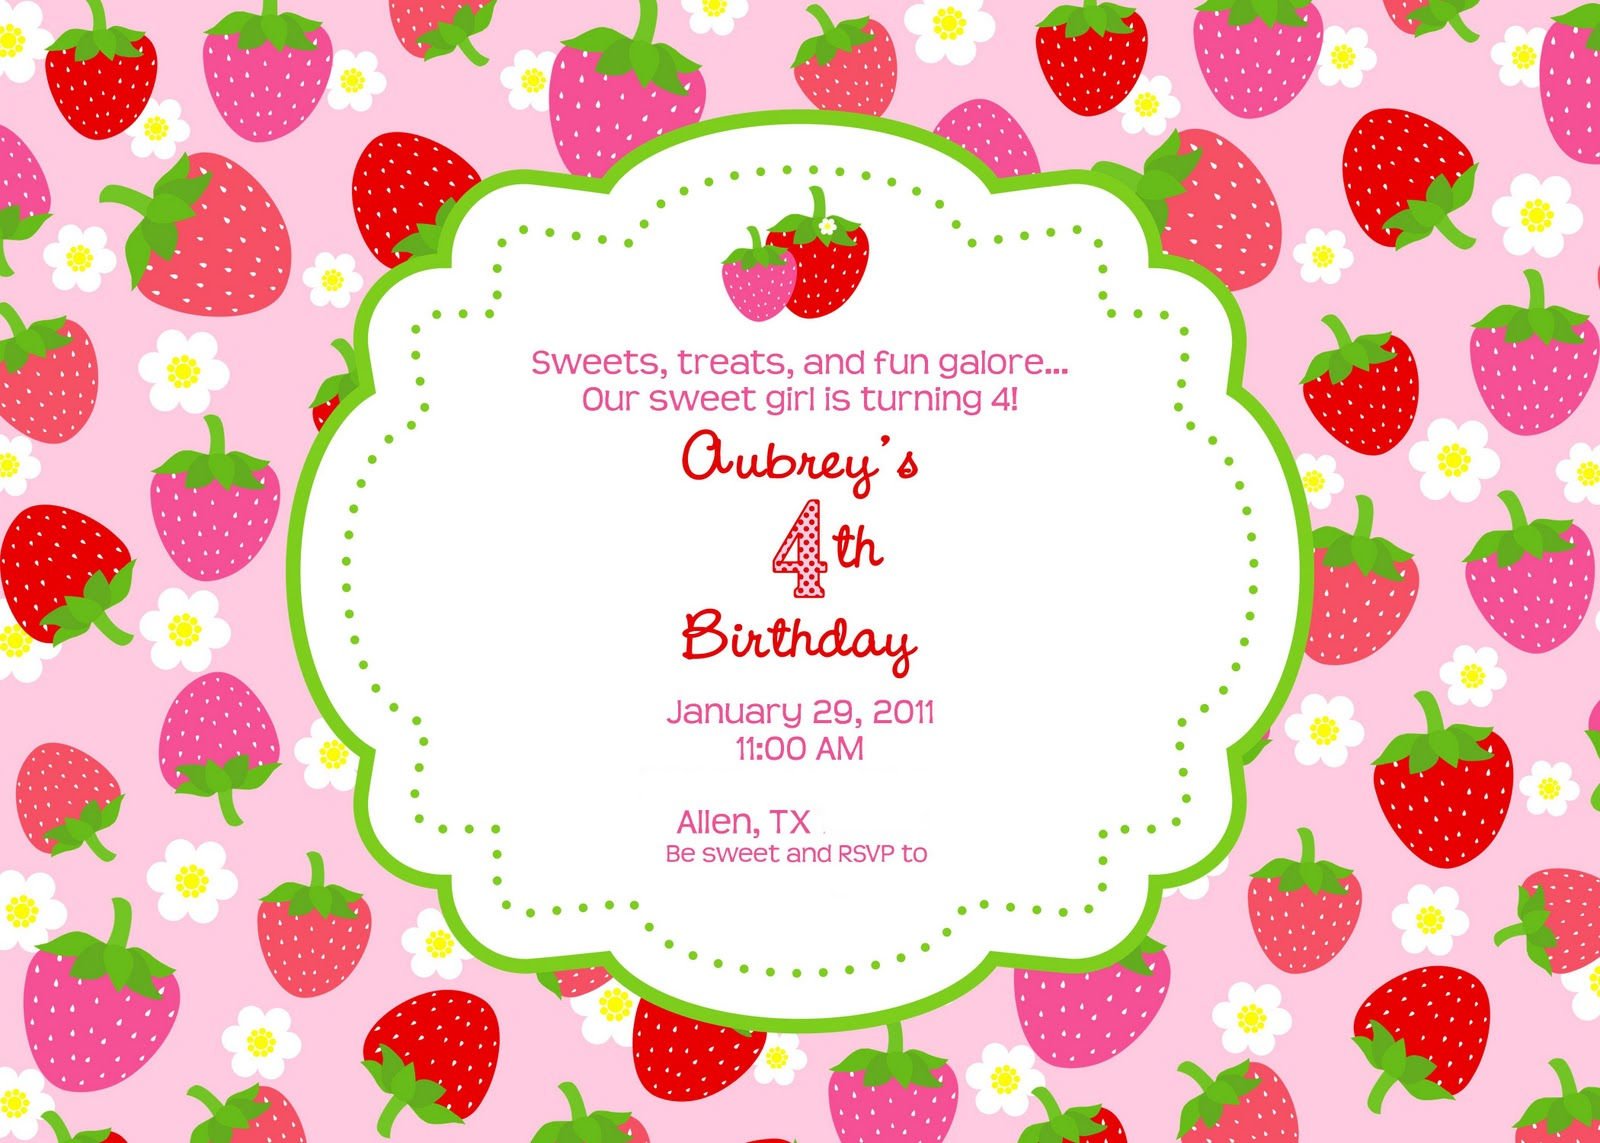 Strawberry Shortcake Party  sc 1 st  Giggles Galore & Strawberry Shortcake Party - Giggles Galore